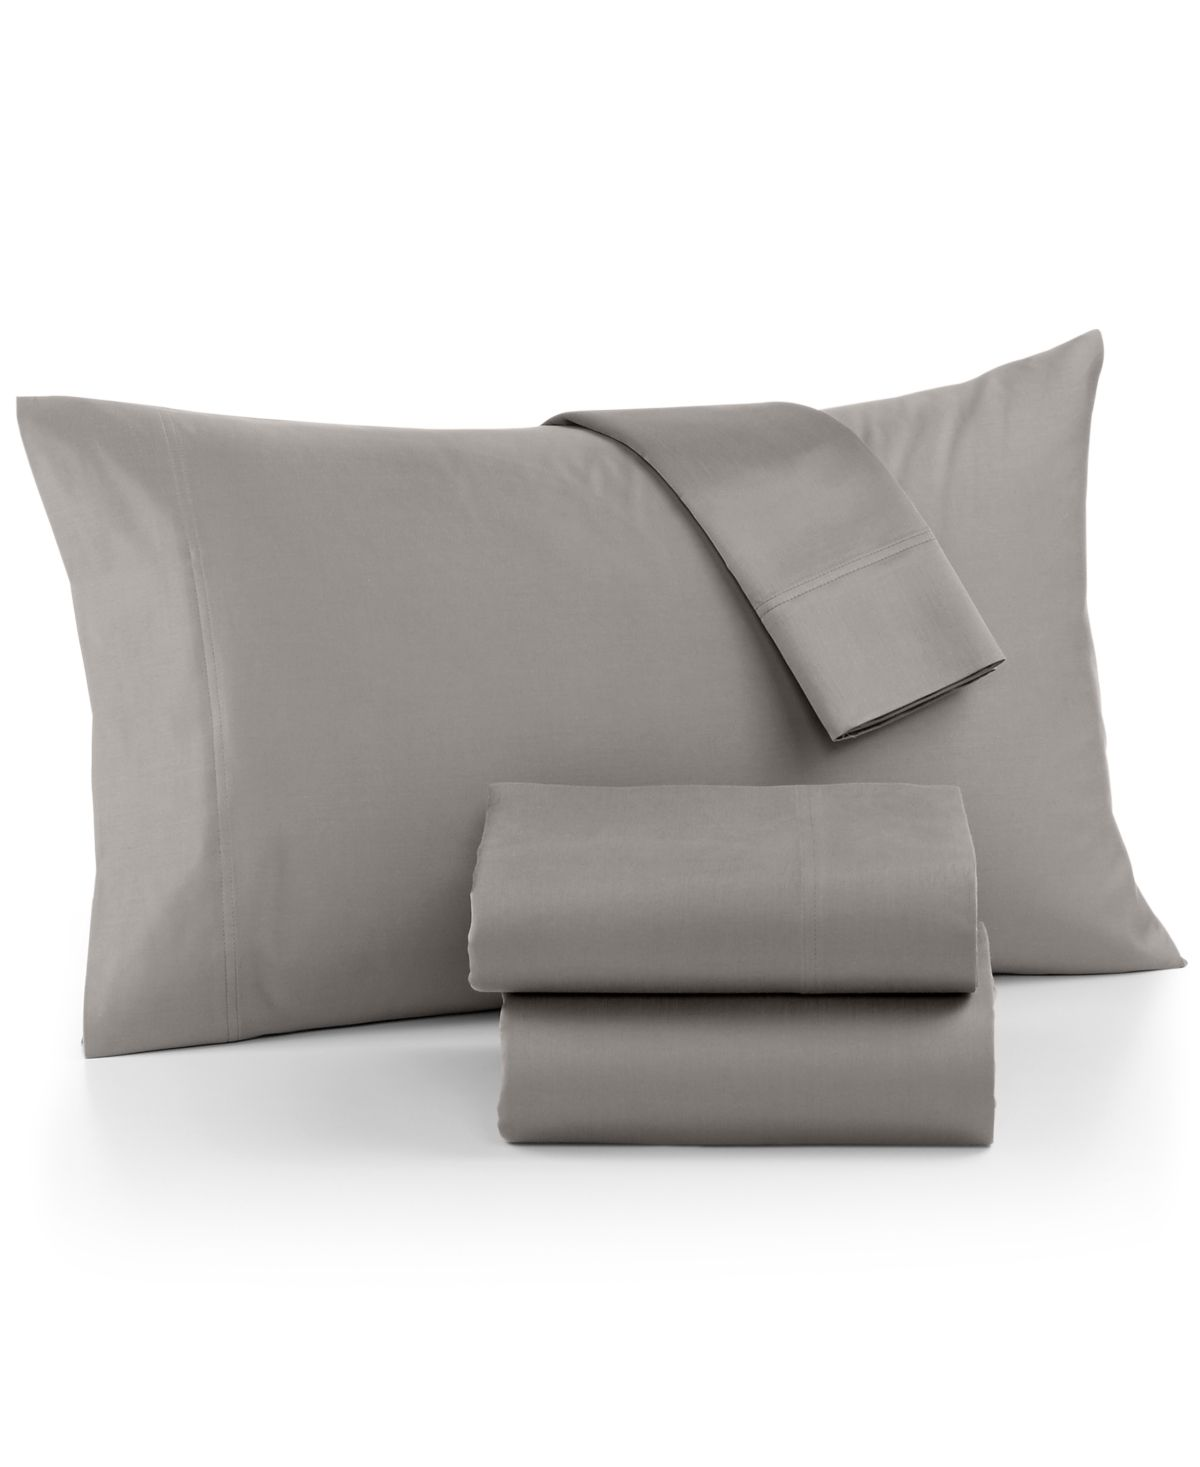 Revive your bedroom decor with the Ultra Cool sheet set from Aq Textiles, featuring a soft sateen finish and a solid ground. Each set includes one flat sheet, one fitted sheet and two pillowcases.